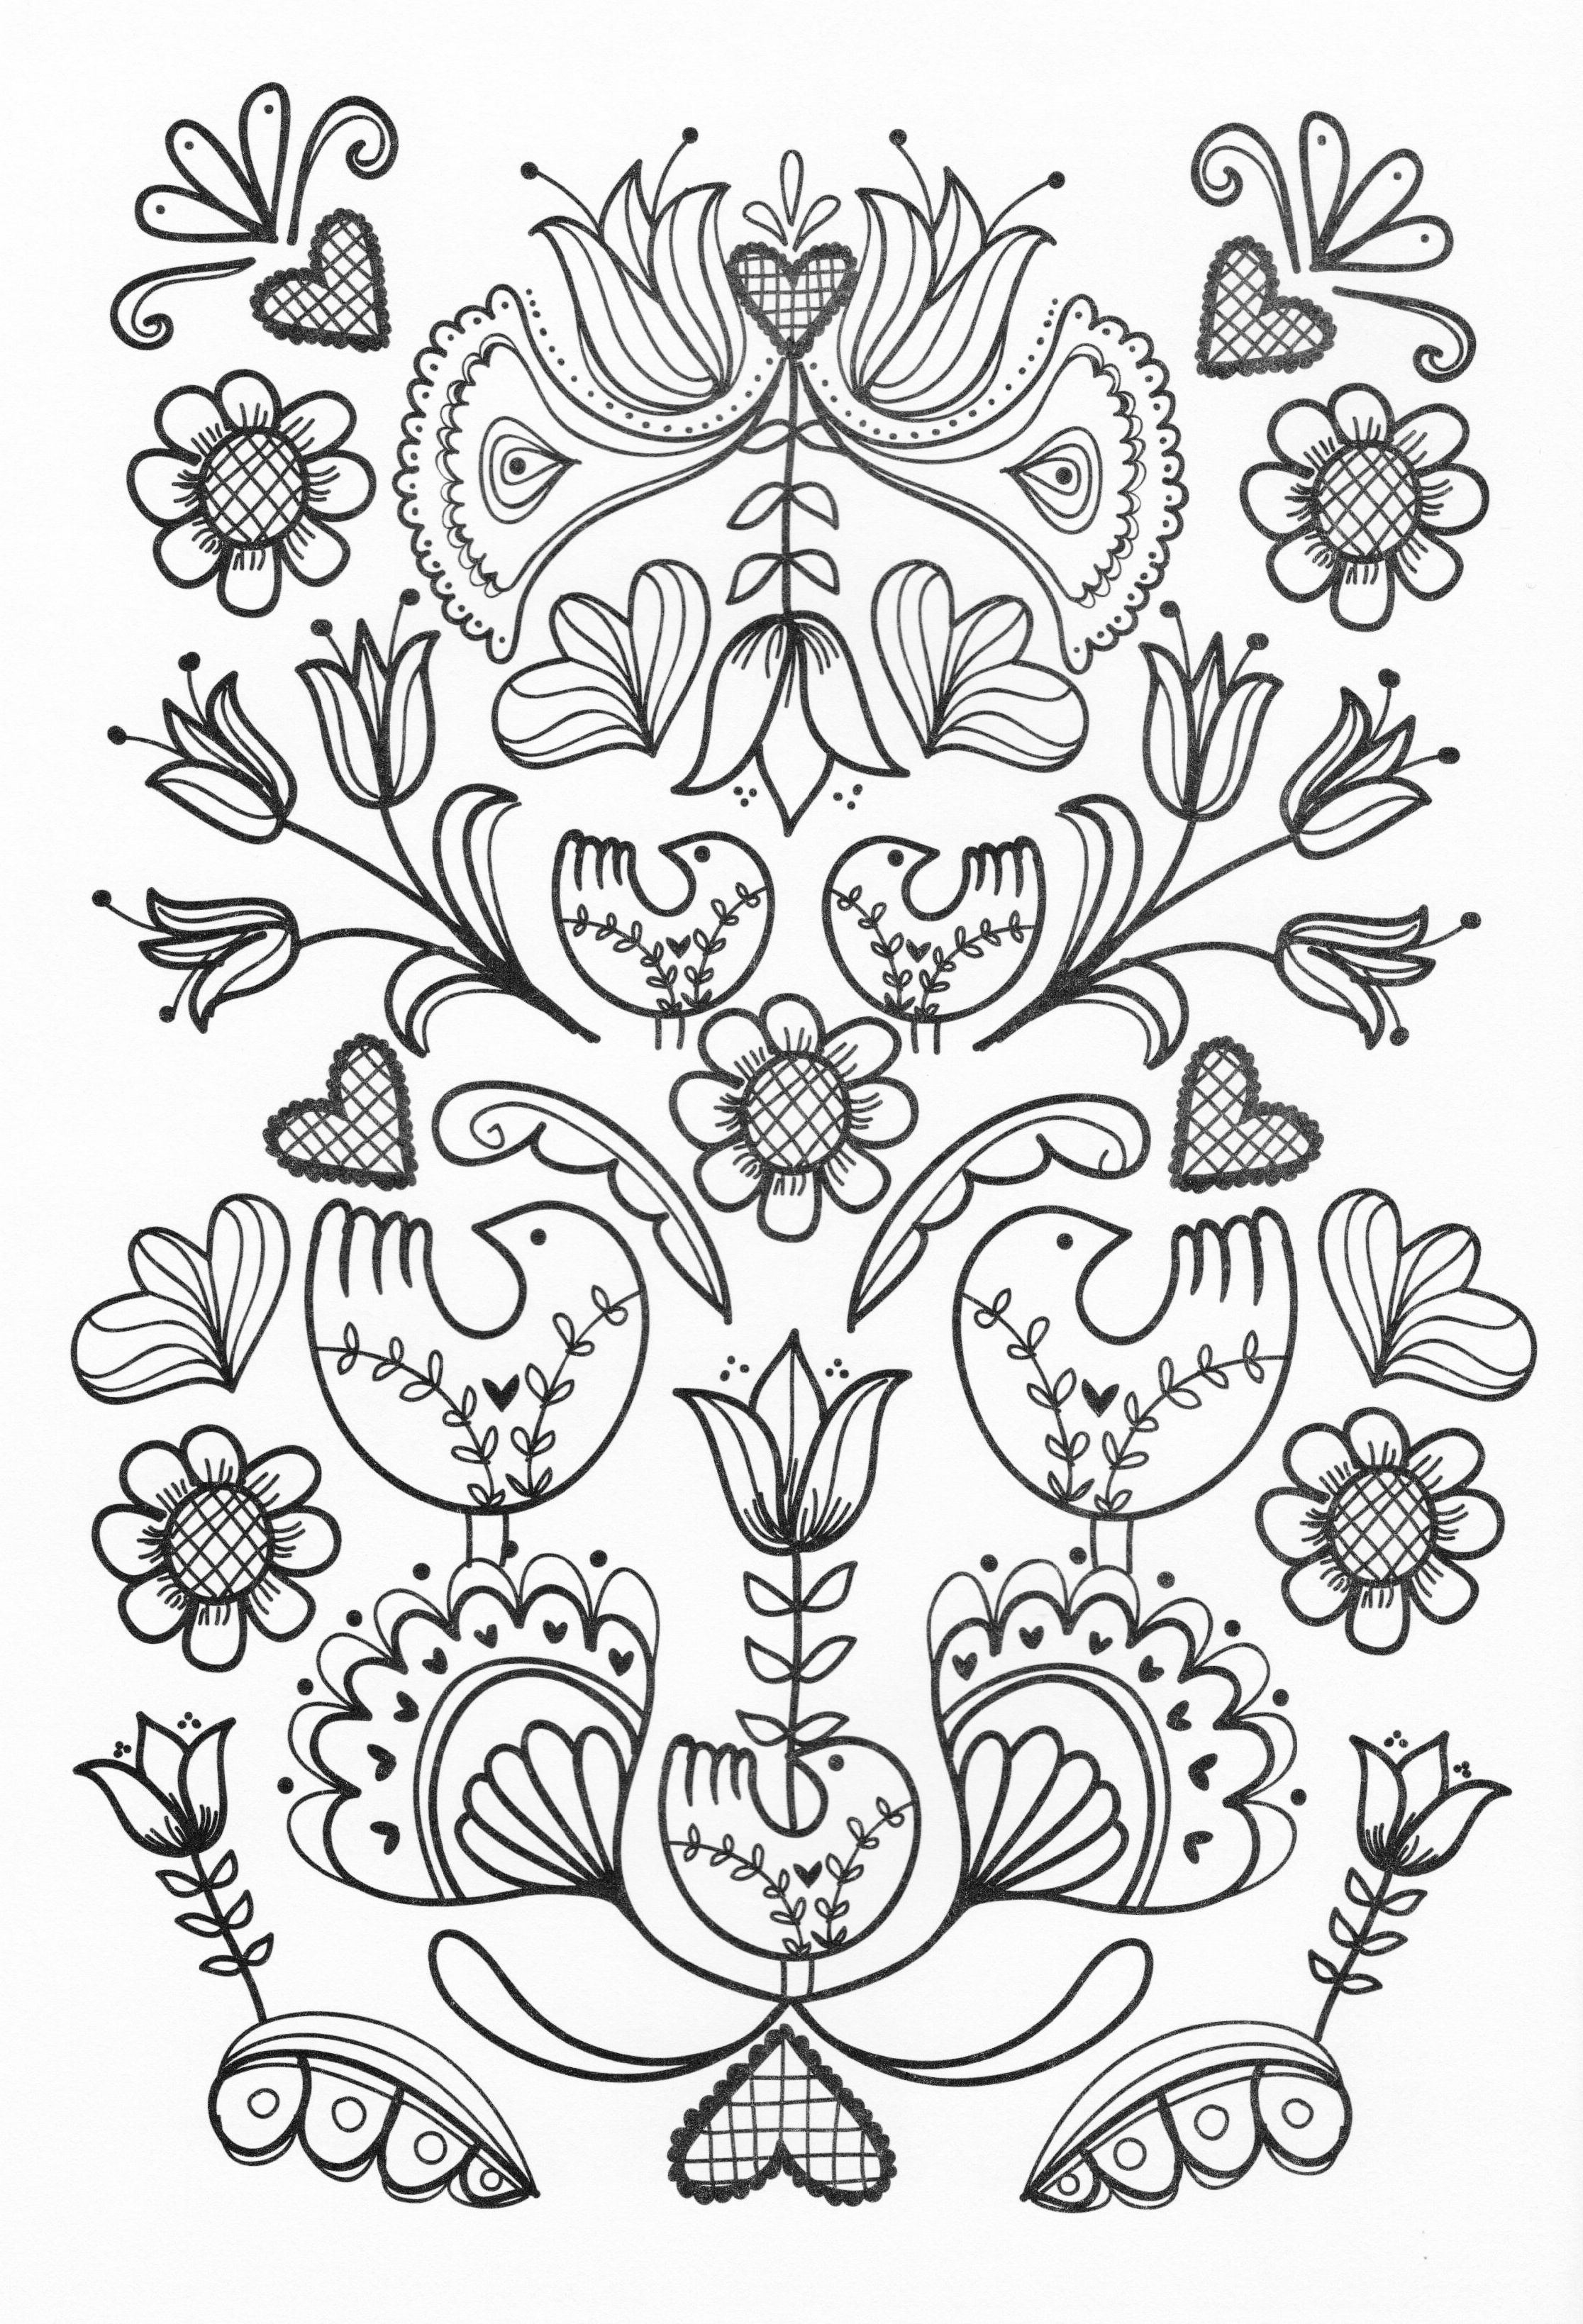 Adult coloring page | free sample | Join fb grown-up coloring ...